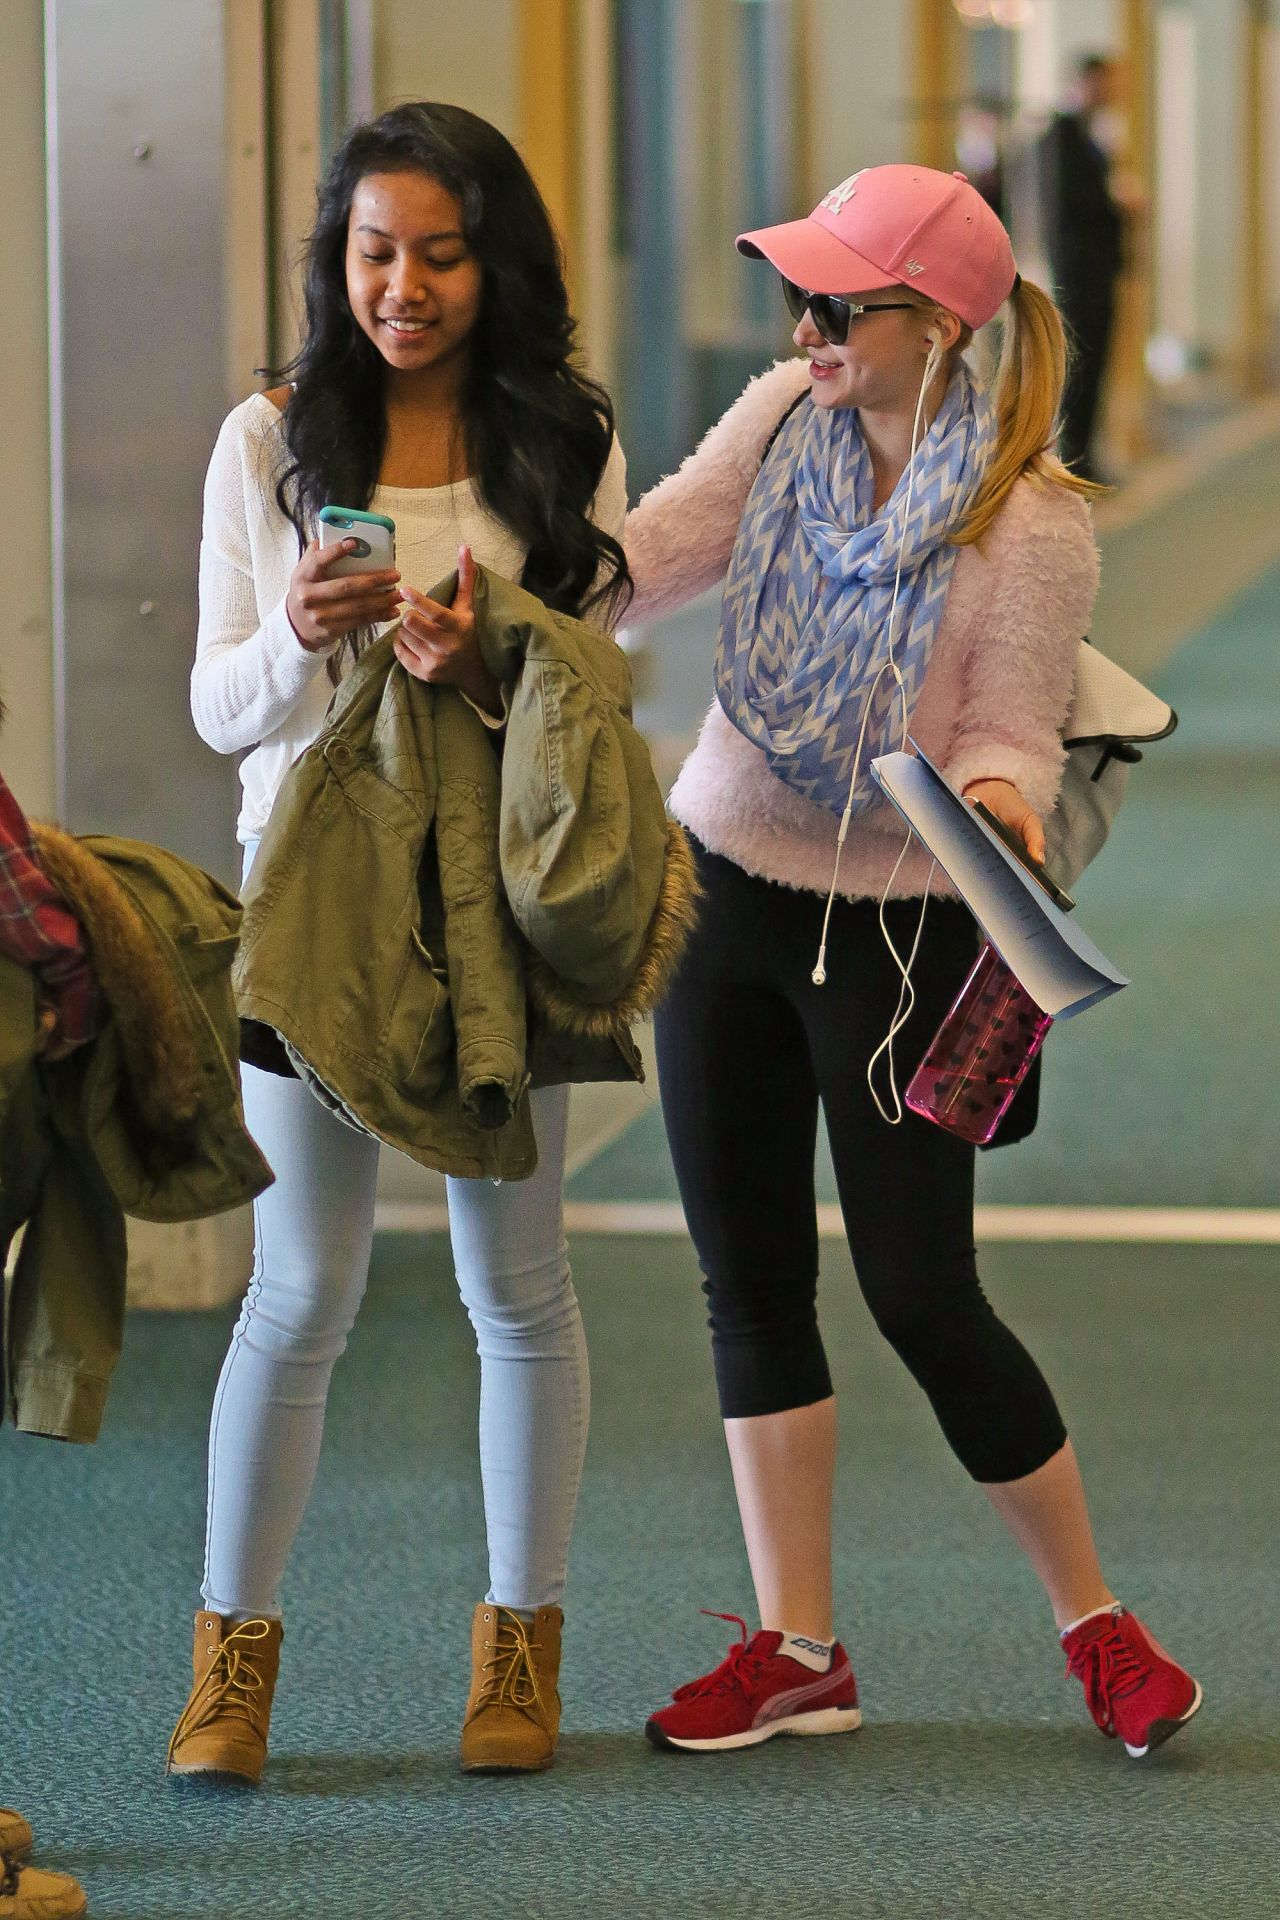 Dove cameron booty leggings vancouver airport, love coloring pages